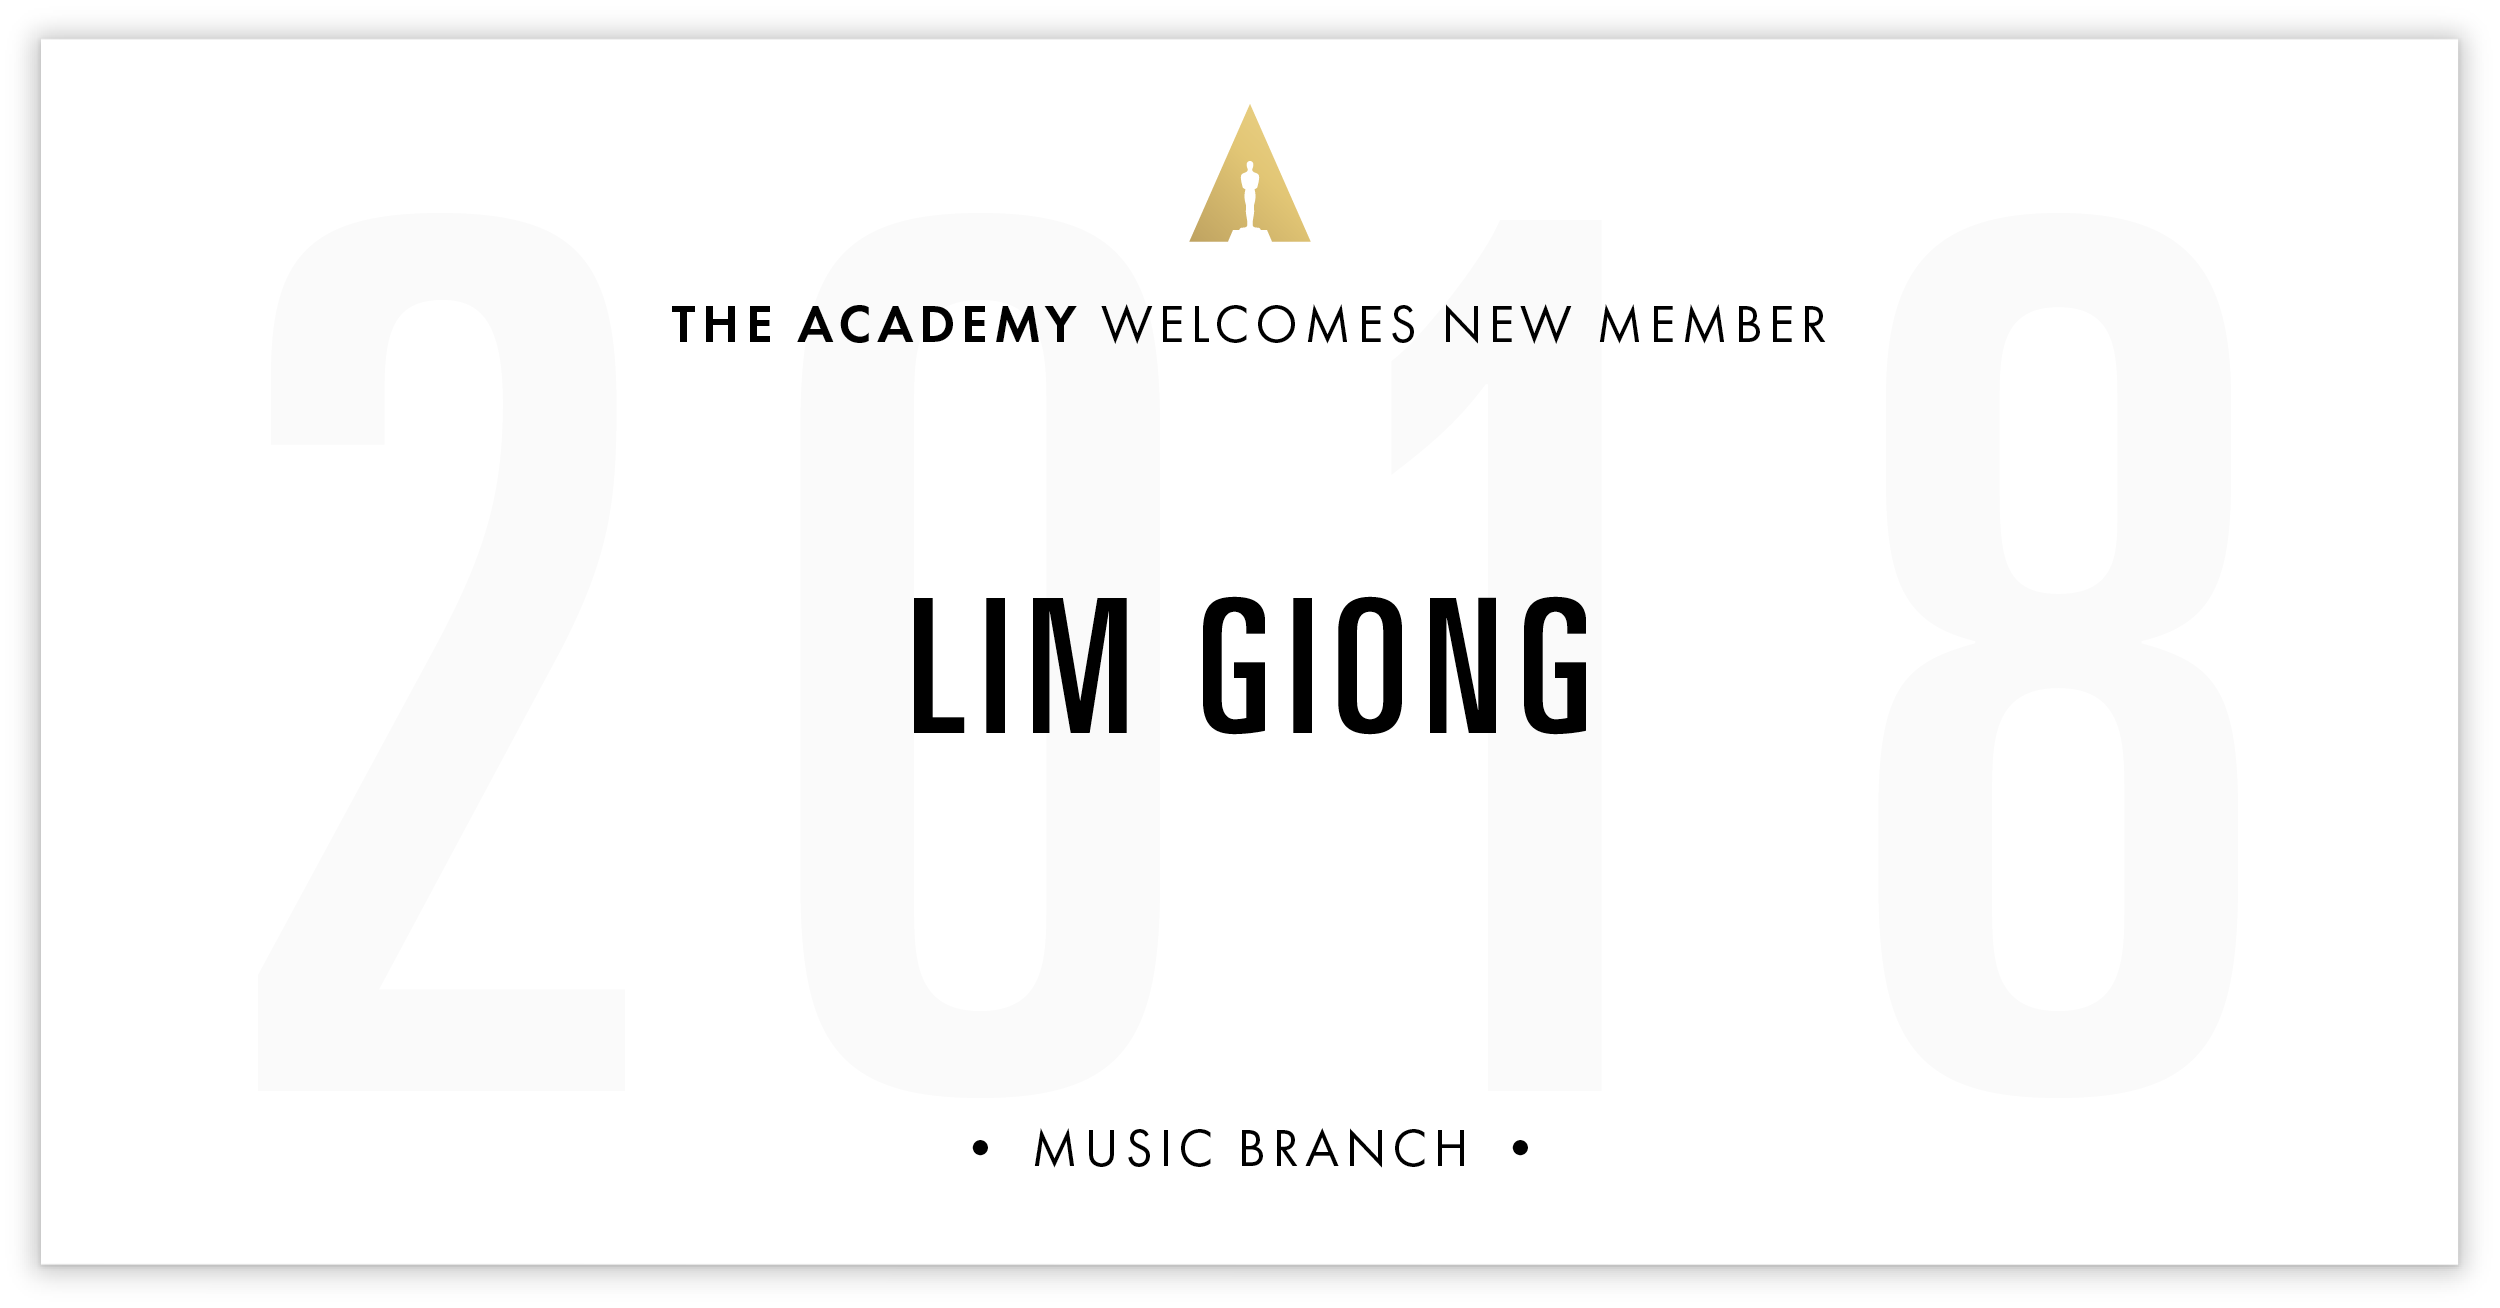 Lim Giong is invited!